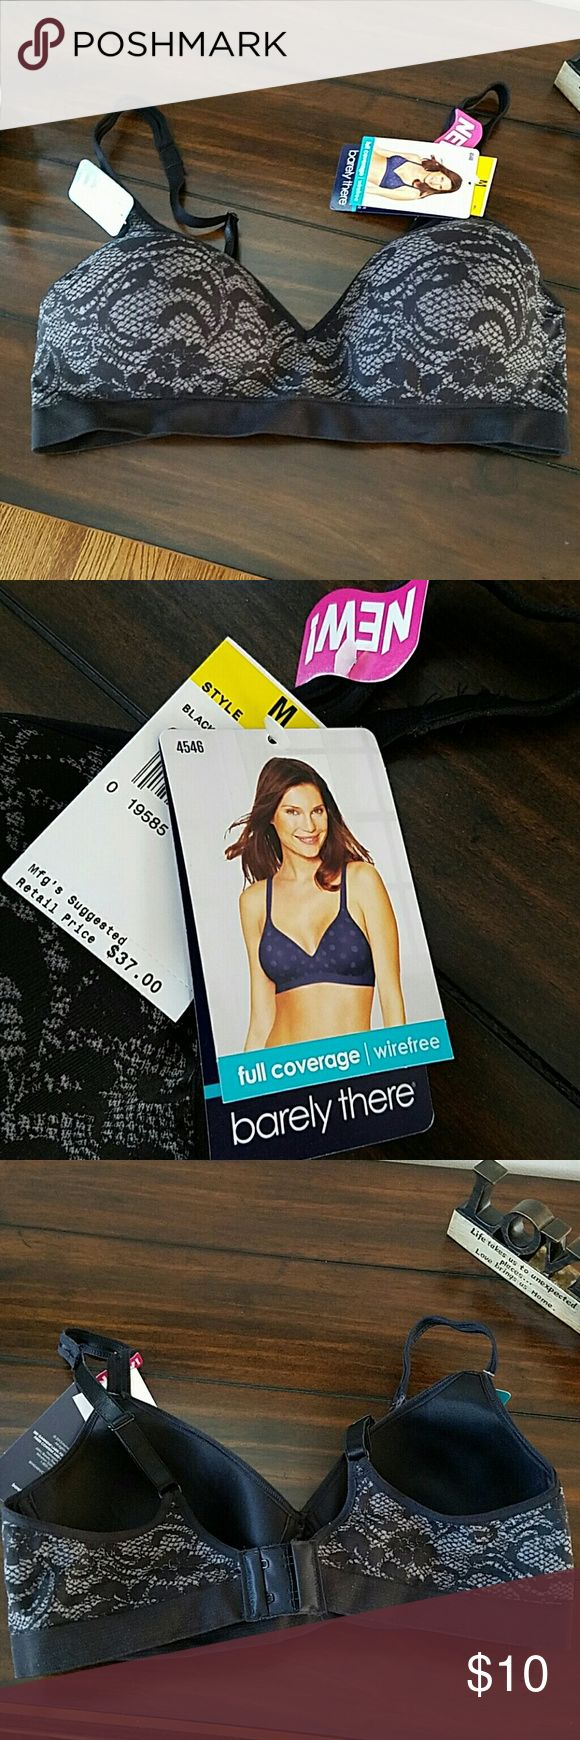 NWT Barely there bra Size medium(refer to picture 4 for medium sizing)~wireless, seamless comfort~ full coverage~ new with tags!! barely there Intimates & Sleepwear Bras